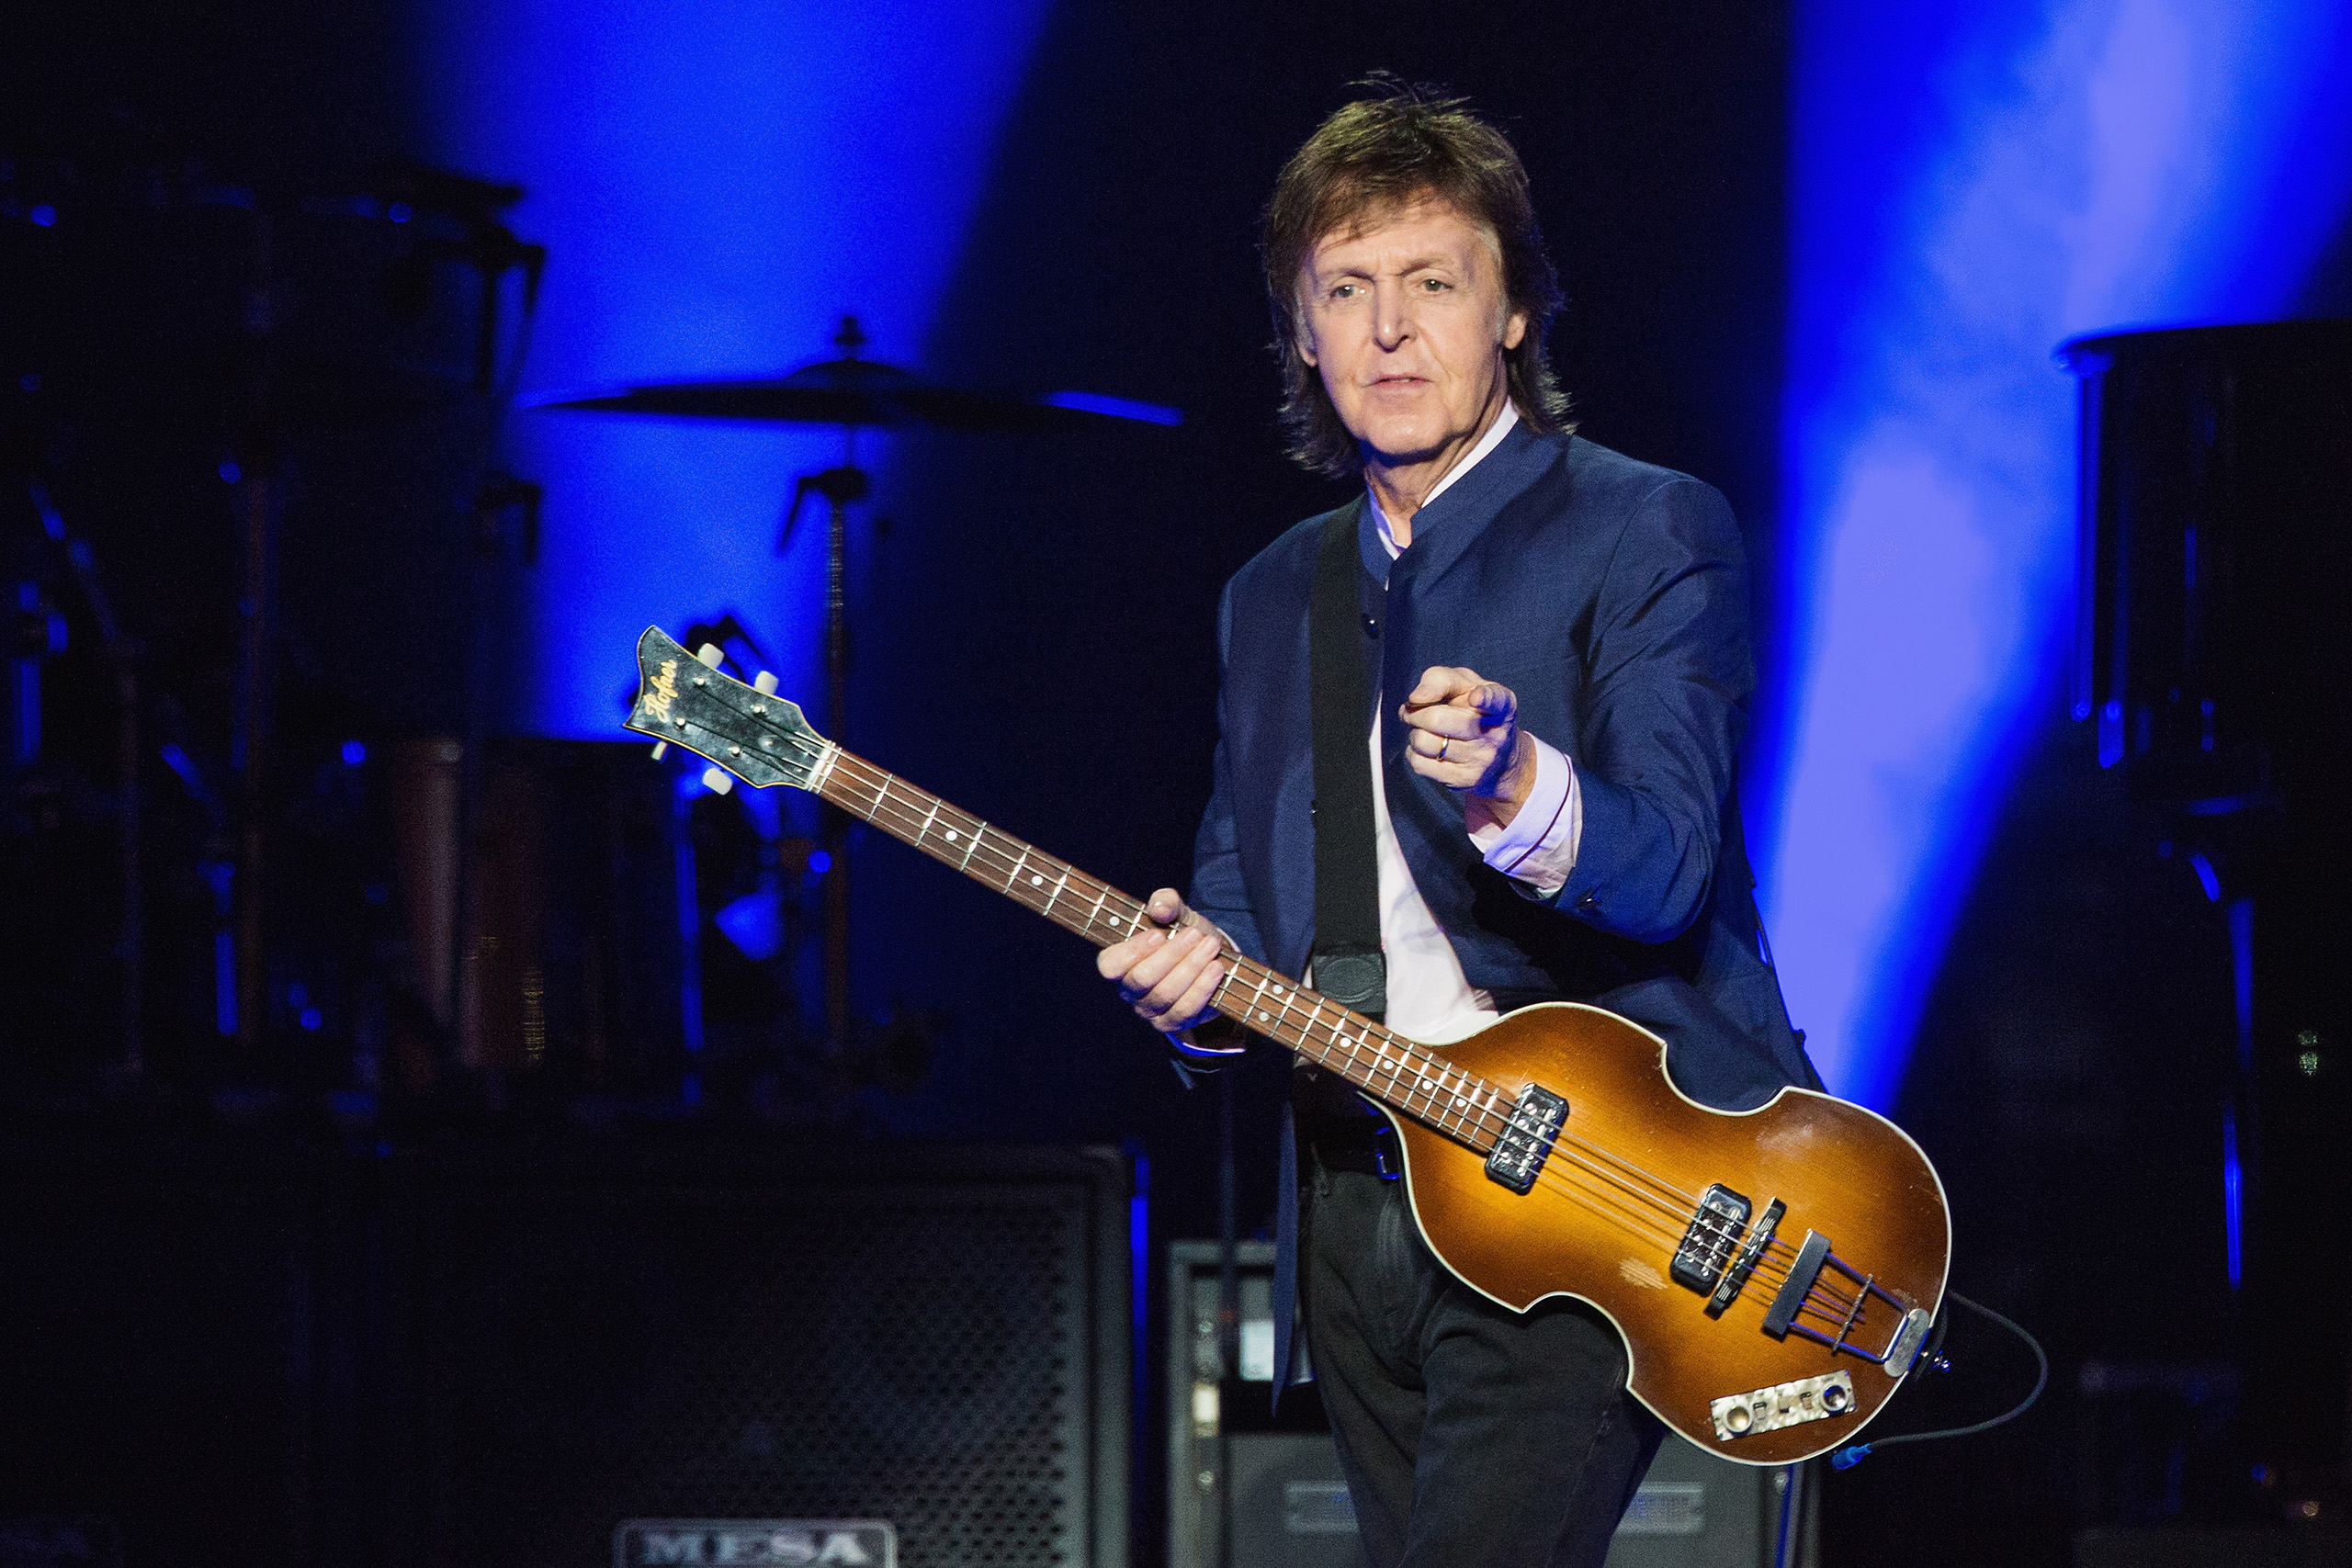 Paul McCartney performs on stage during the 'One on One' tour in Seattle, Washington, April 17, 2016.